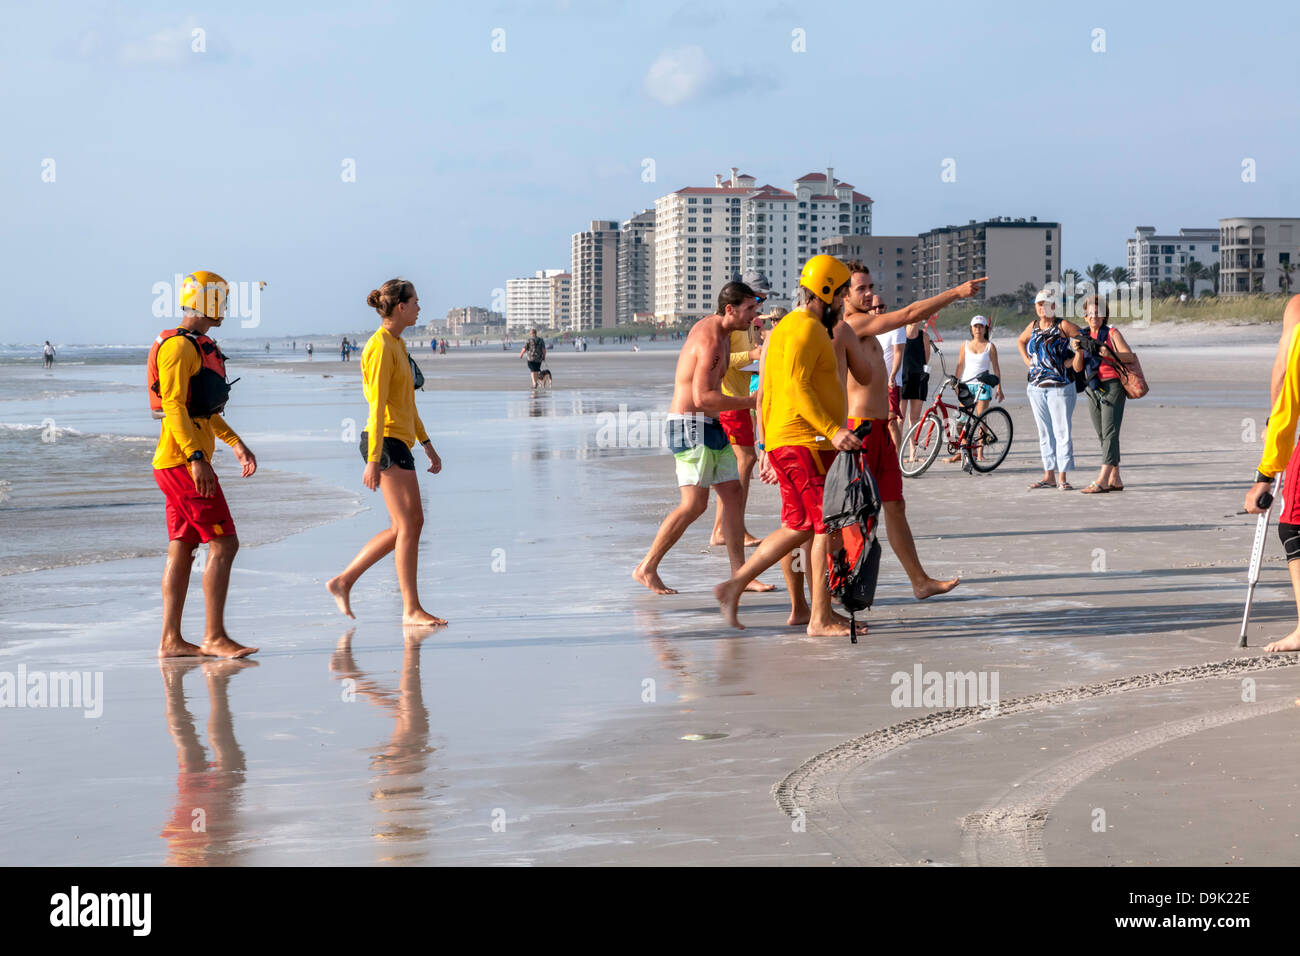 Injured competitor being escorted from ocean by beach rescue volunteer at the 4th Annual JAX Beach Paddling Challenge - Stock Image